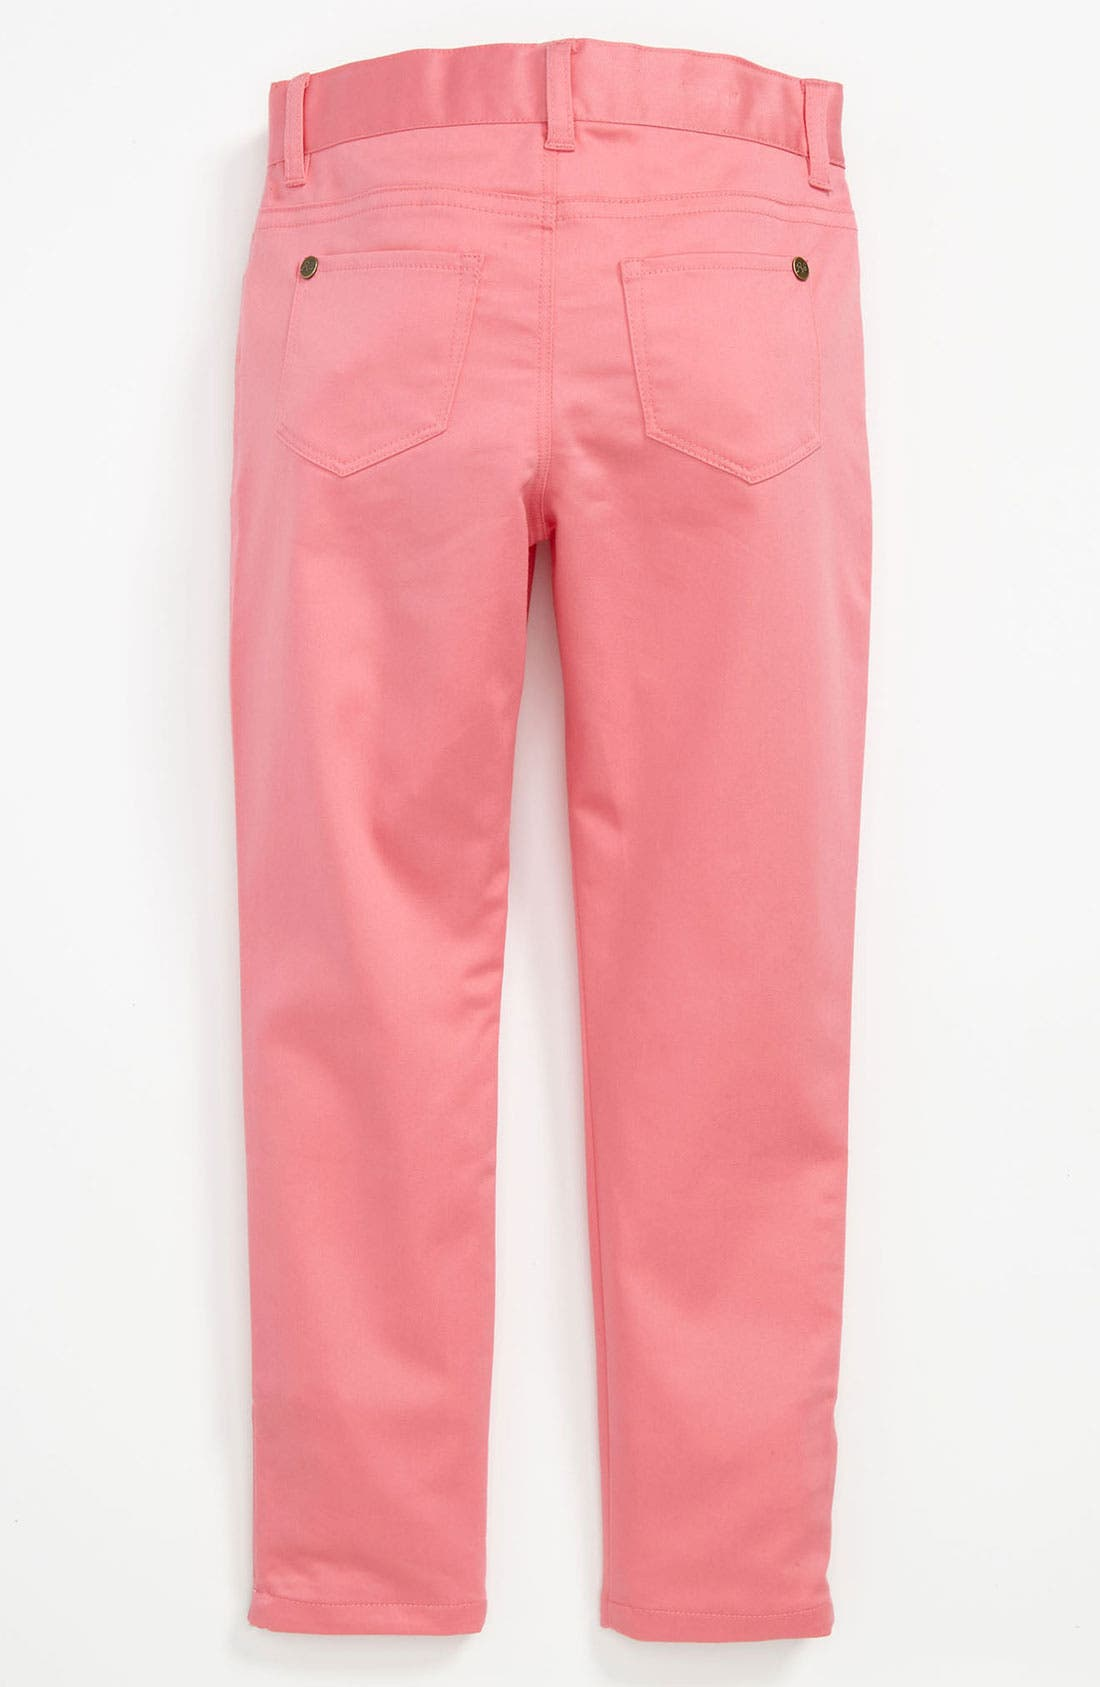 Alternate Image 1 Selected - Ruby & Bloom 'Ana' Ankle Pants (Little Girls & Big Girls)